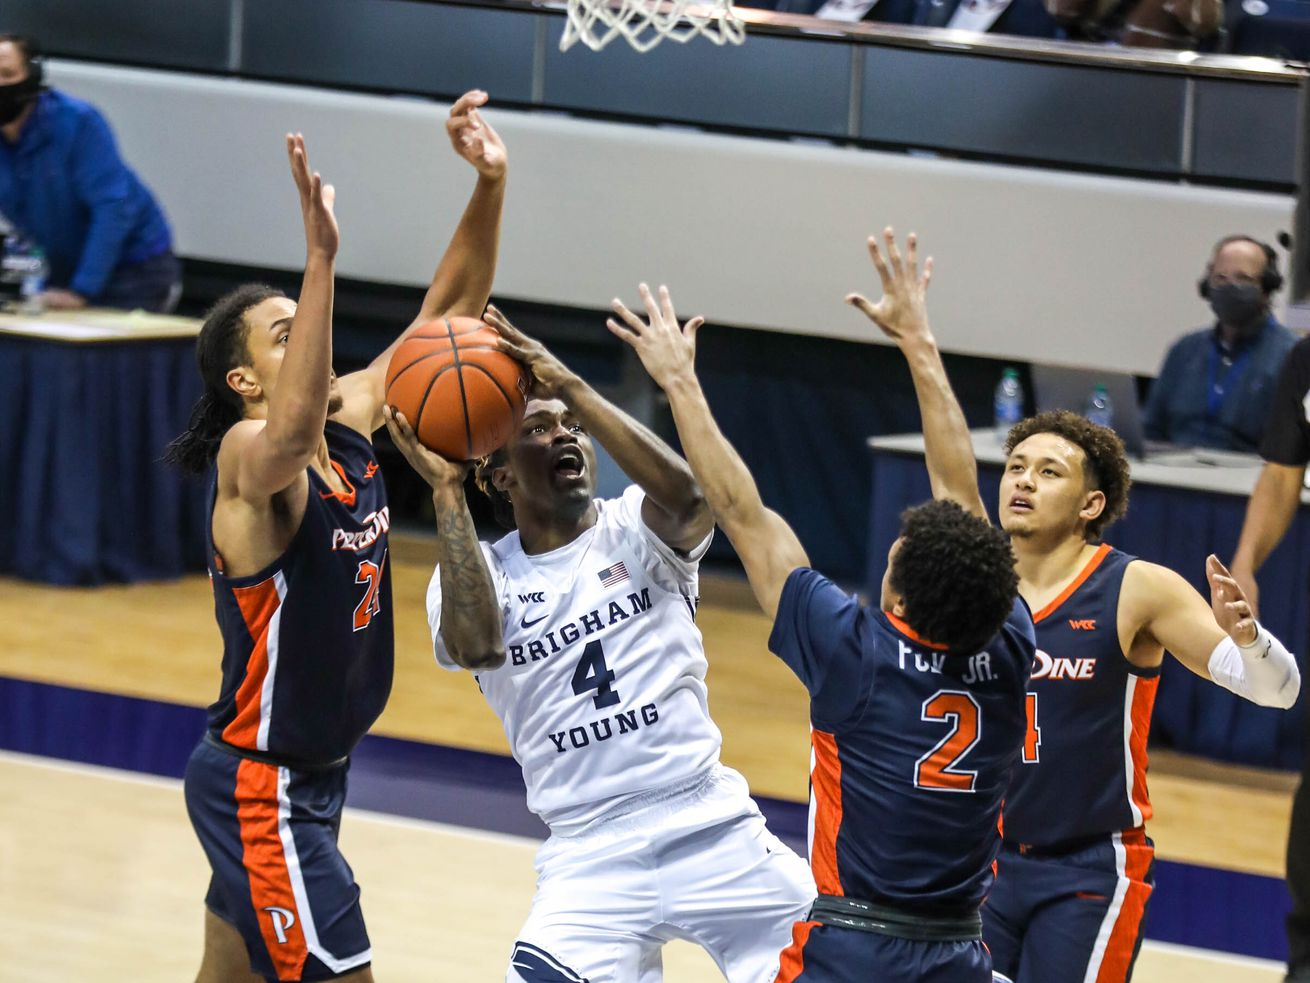 Why BYU's upcoming rematch at Pepperdine could have playoff-like feel